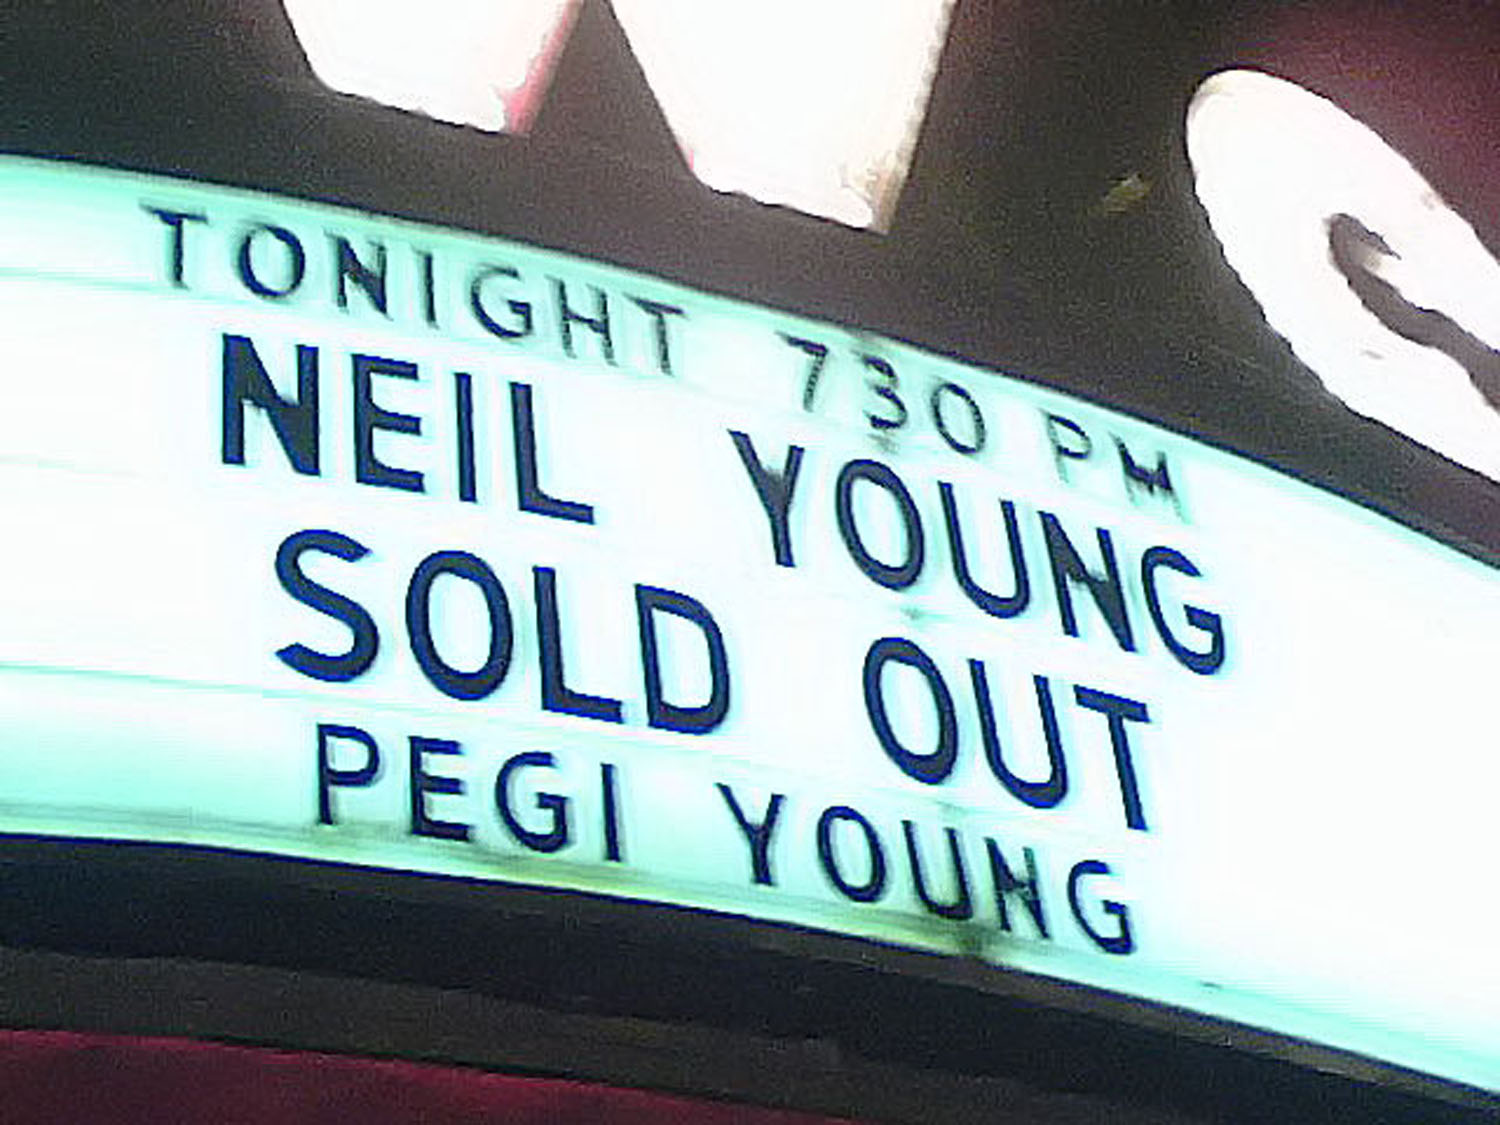 pennsylvania, upper darby, tower theatre, legend, marquee, Neil Young, Peggi Young, show, photo